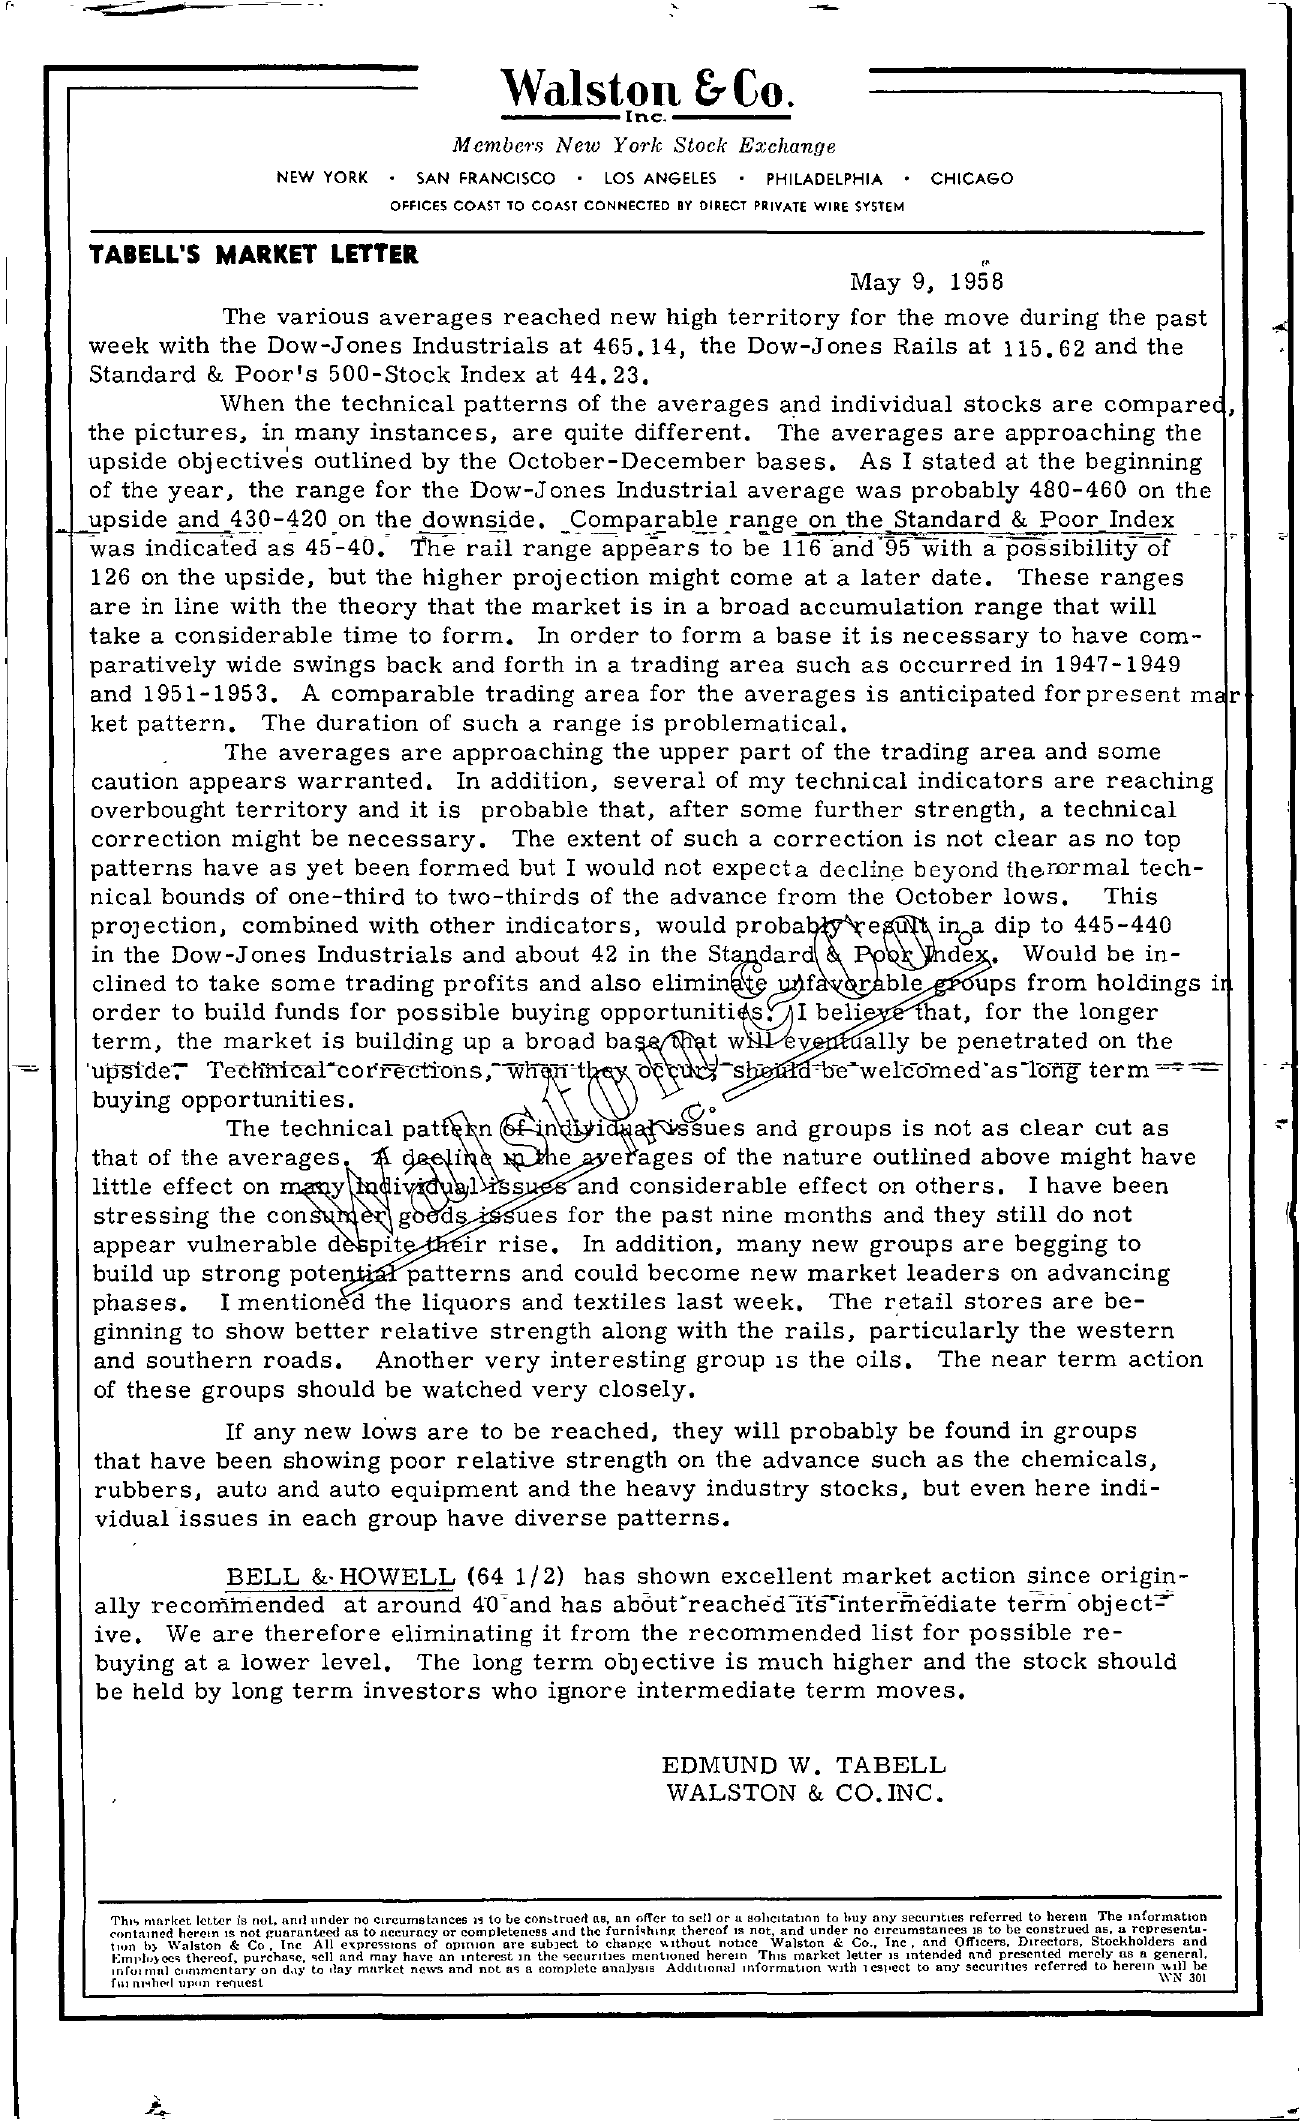 Tabell's Market Letter - May 09, 1958